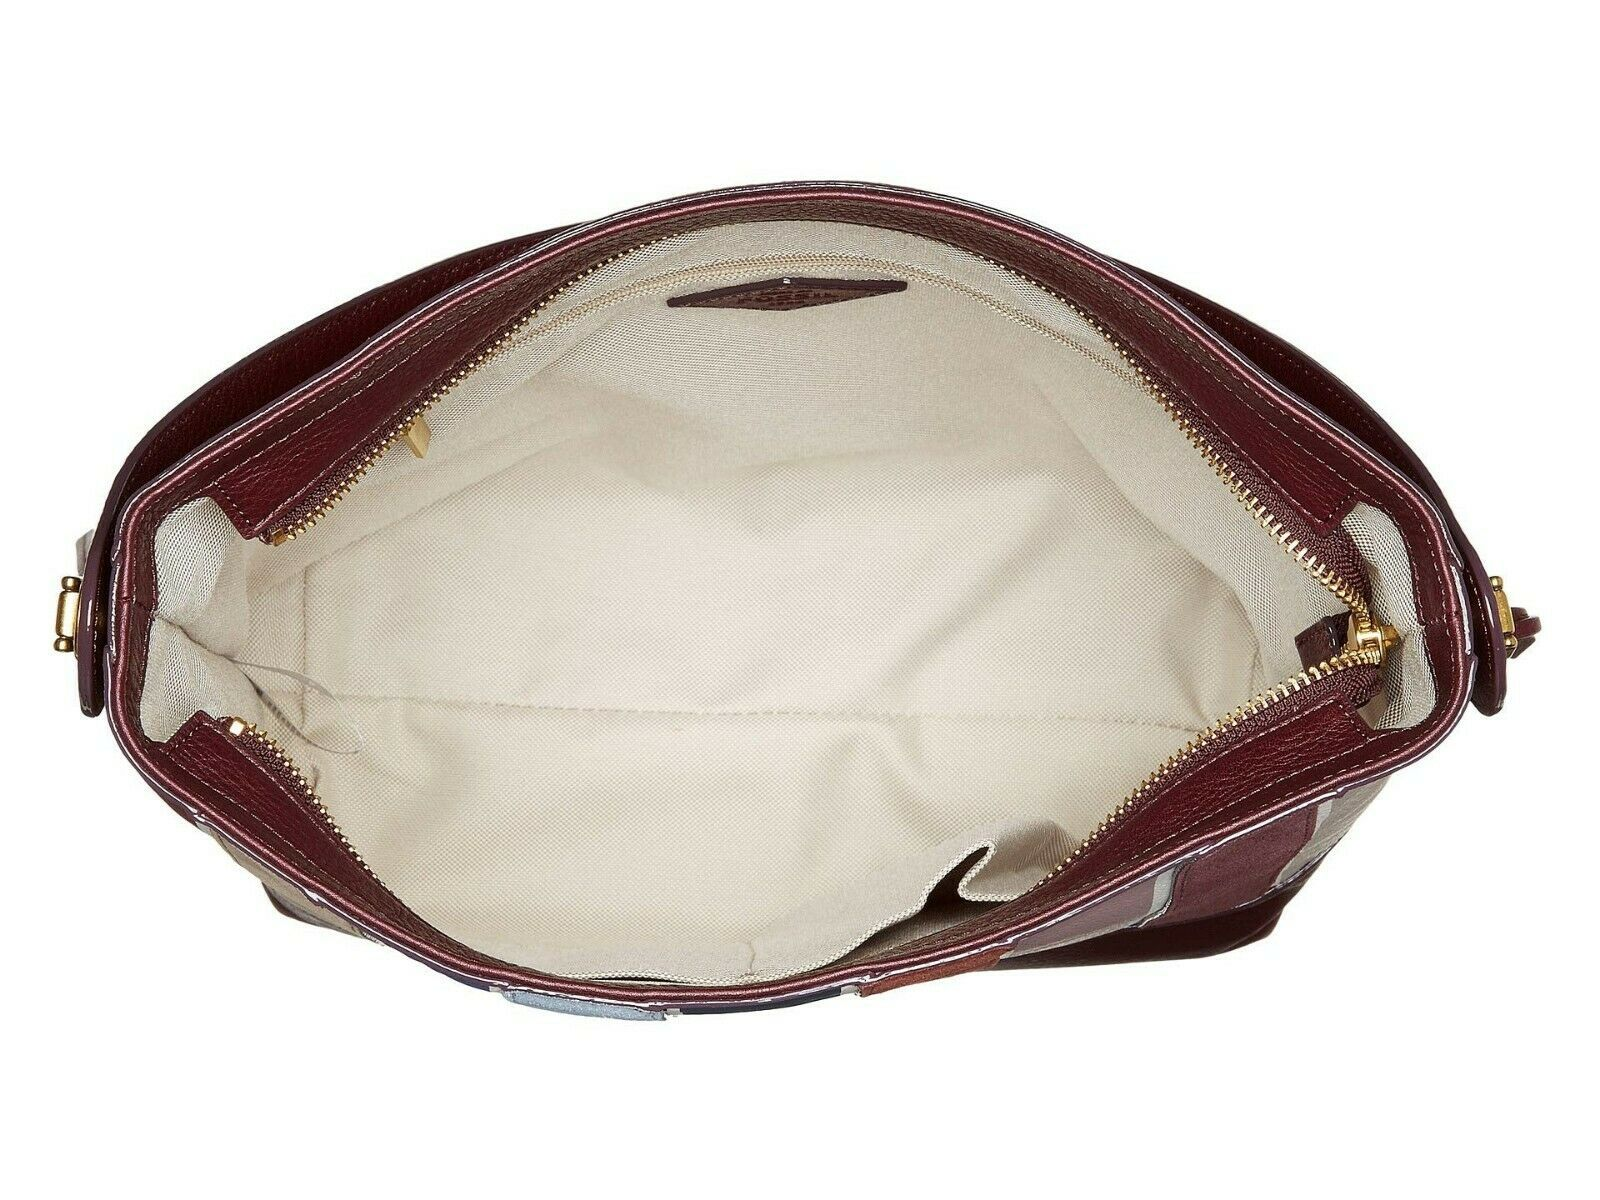 New Fossil Women's Maya Small Leather Hobo Bag Variety Colors image 14